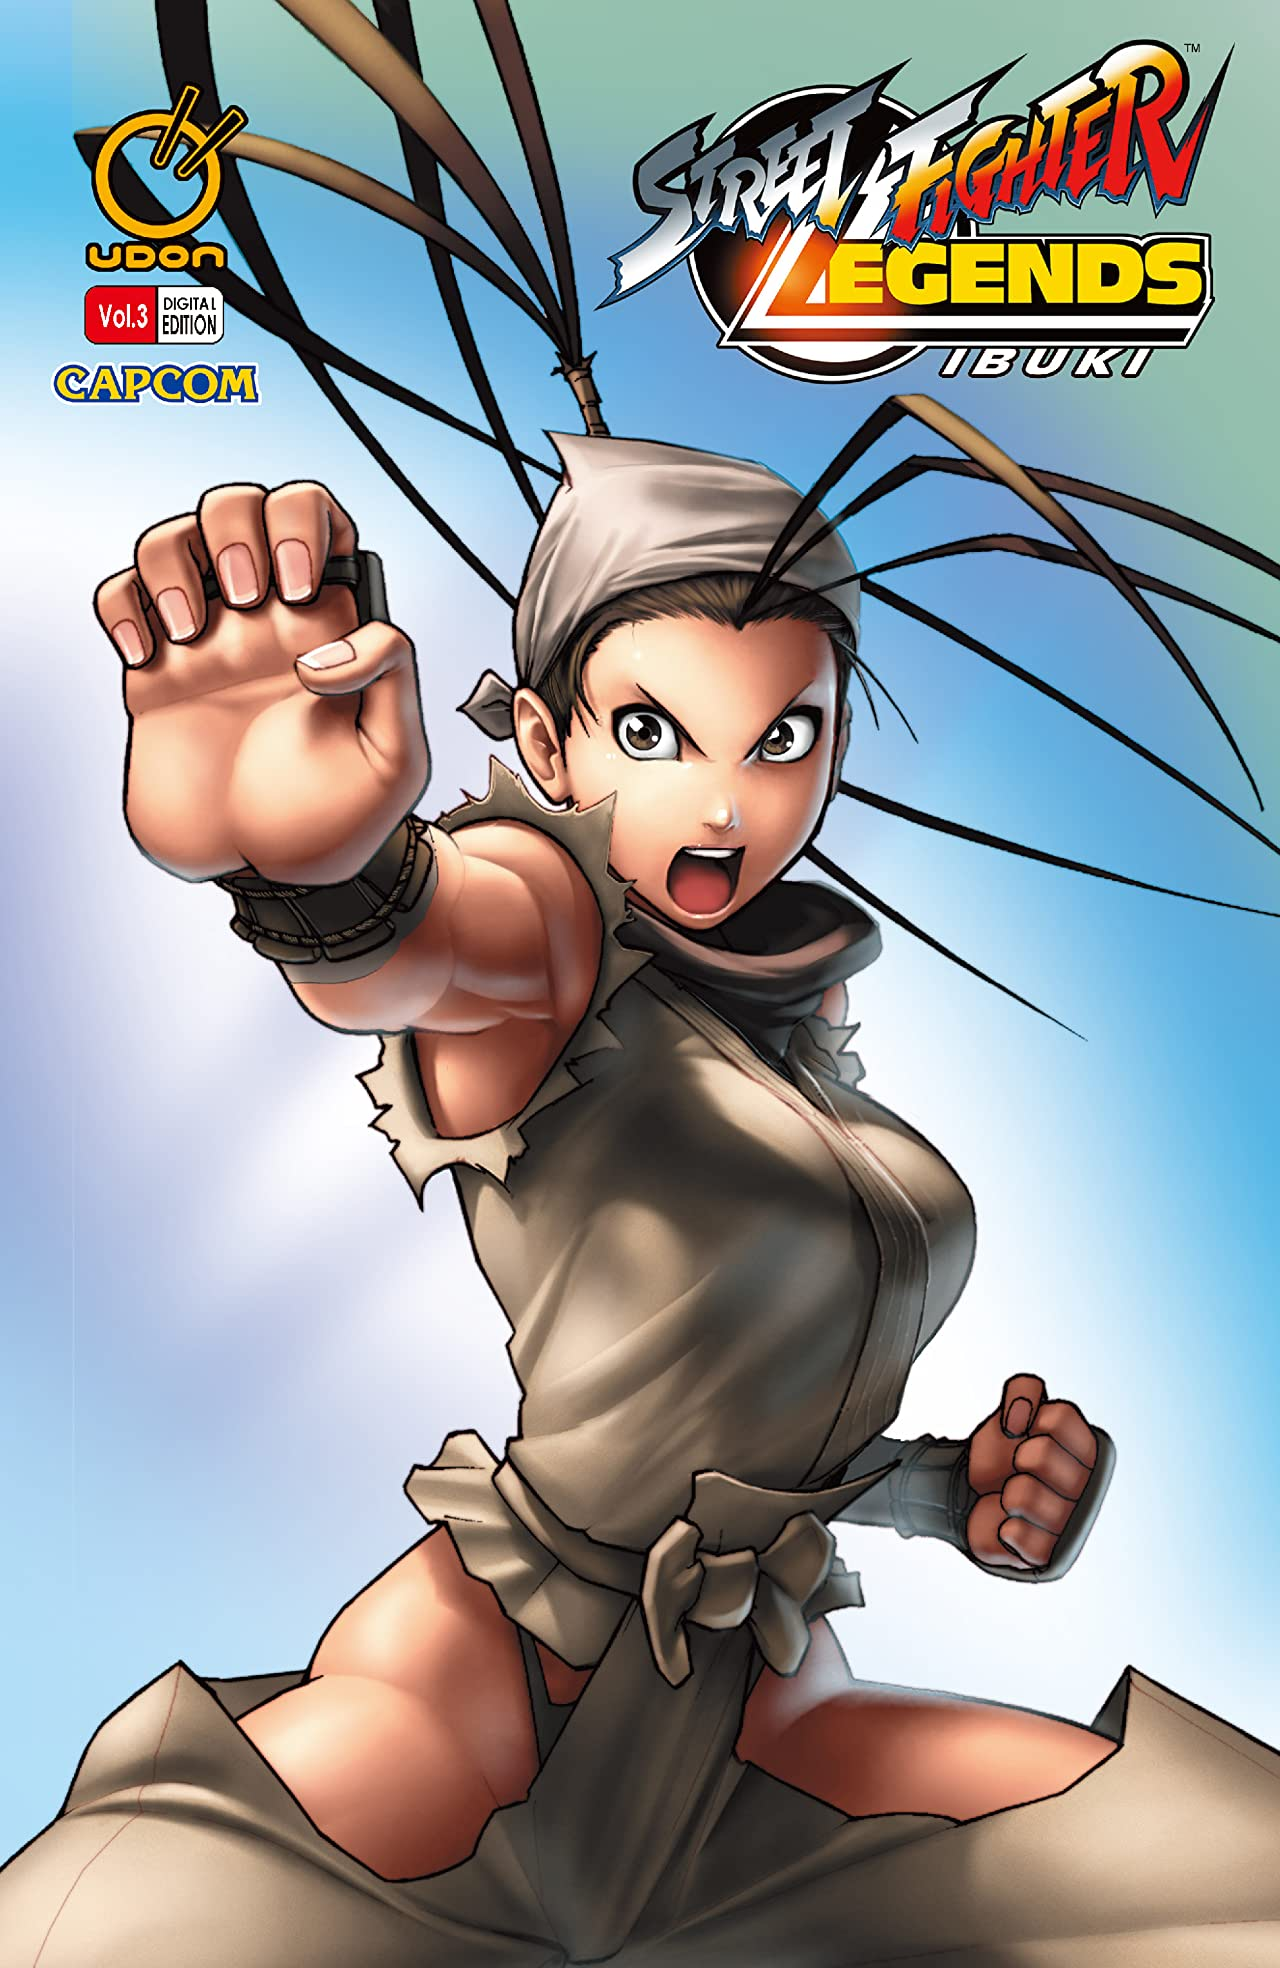 Street Fighter Legends: Ibuki Vol. 3